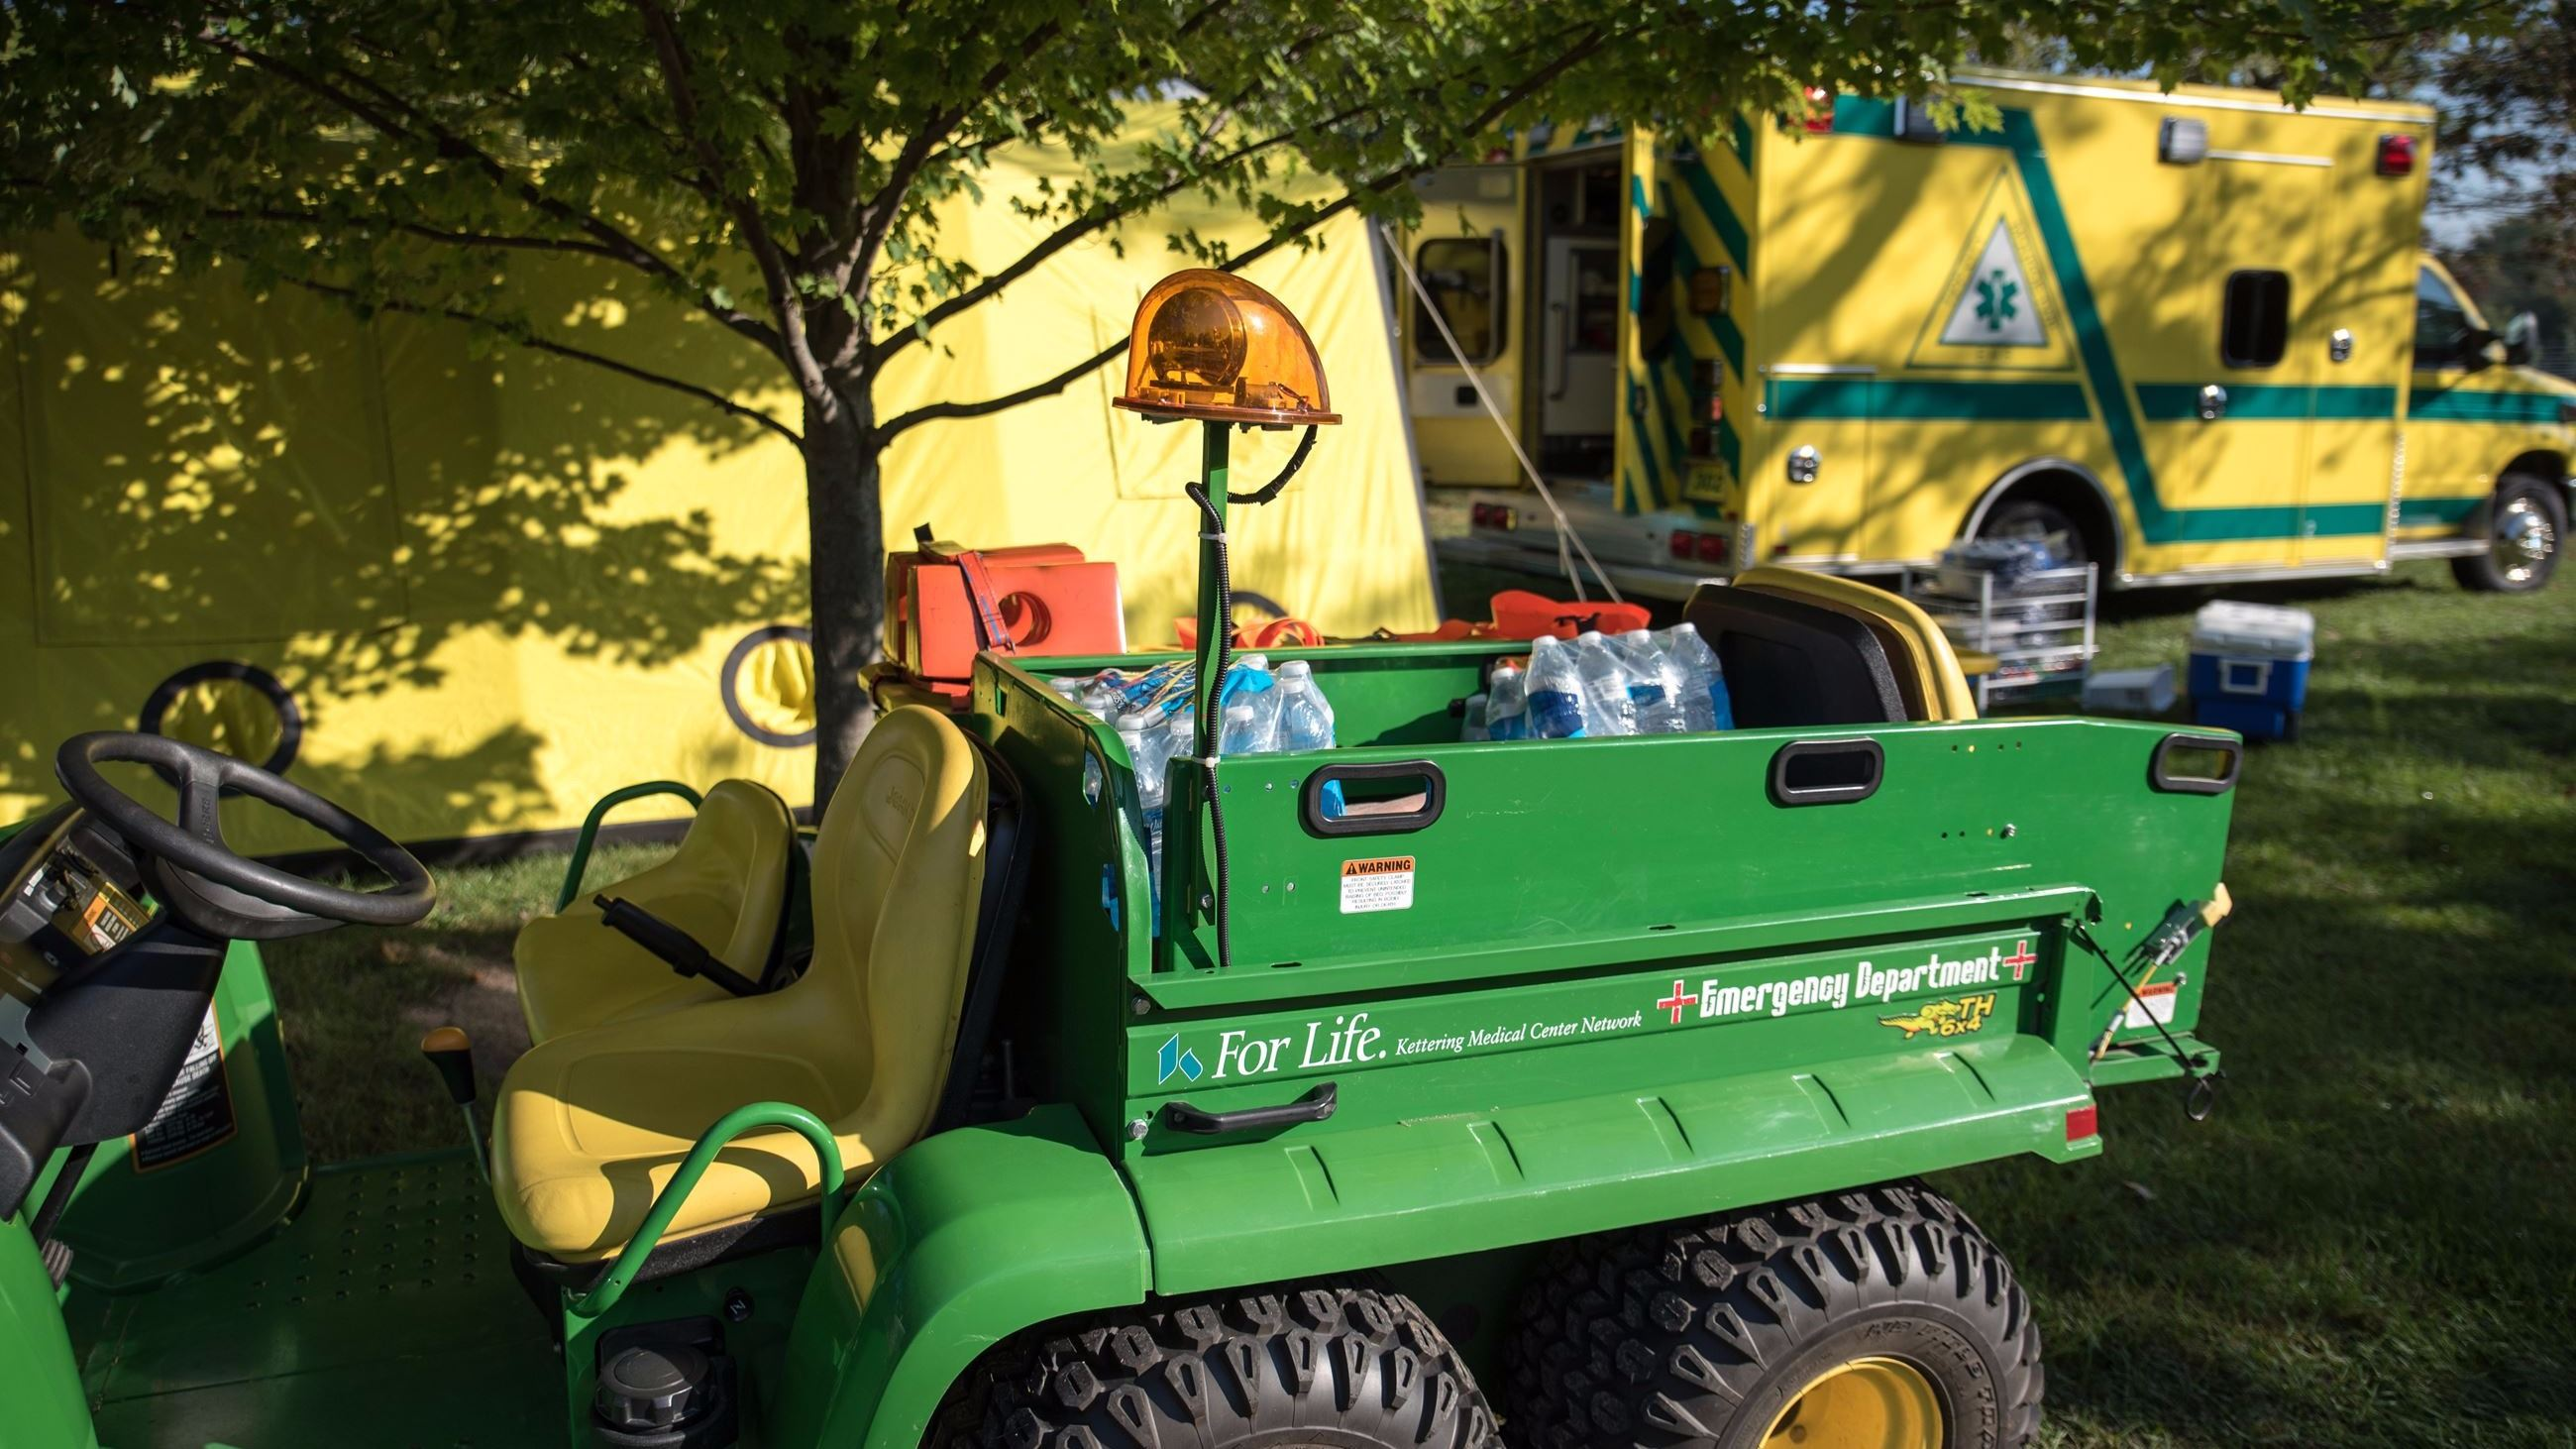 John Deere Gator and Tipp City EMS Ambulance